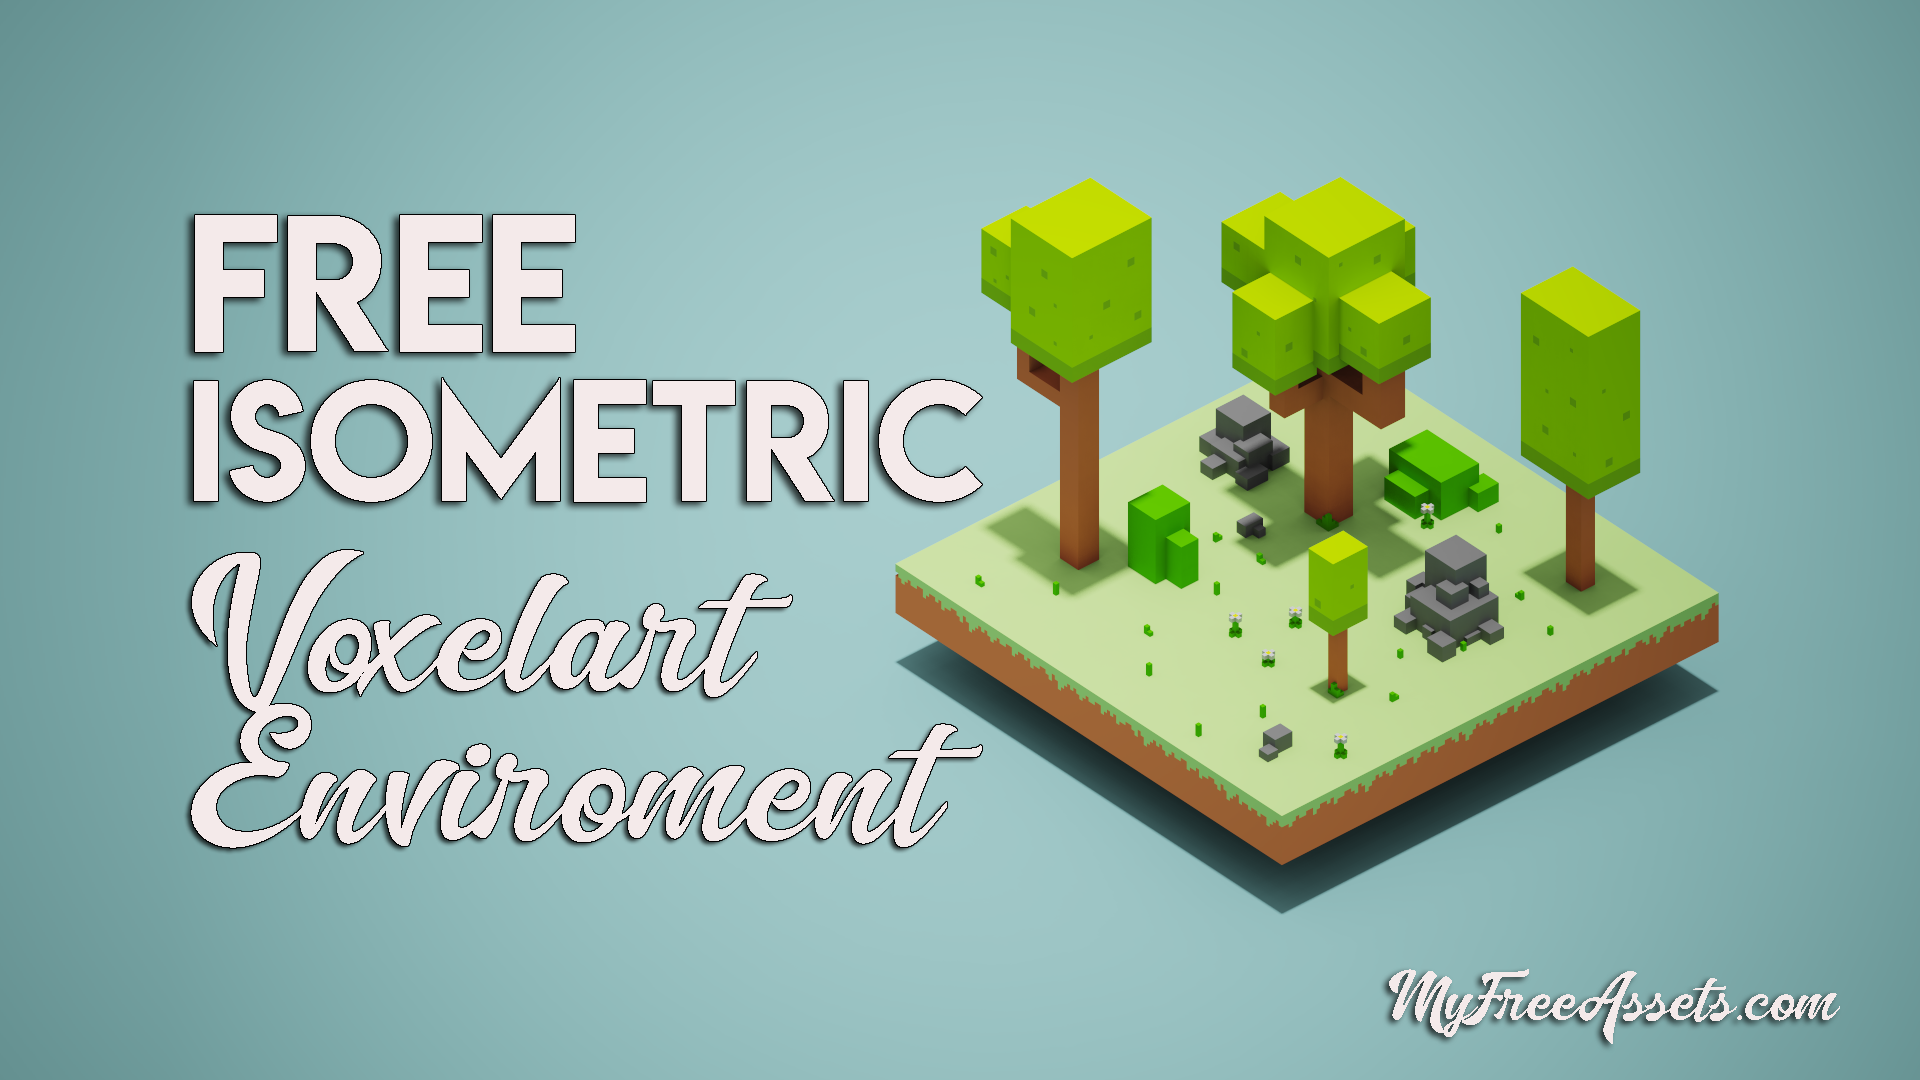 Free isometric enviroment : Vegetatión, trees and rocks.